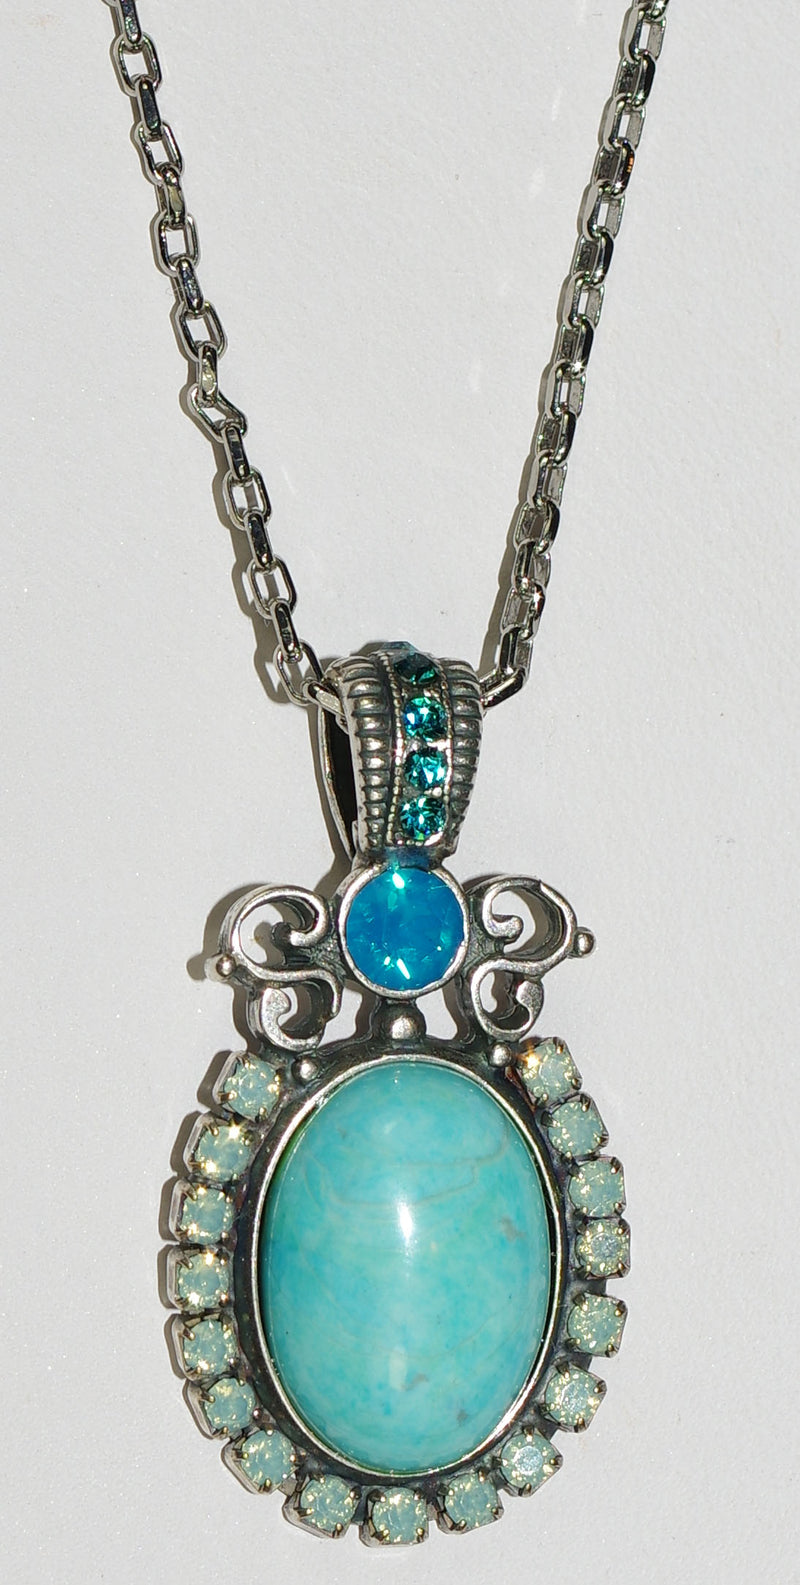 "MARIANA PENDANT BAHAMAS: blue, pacific opal, teal stones in 1.75"" silver setting, 28"" adjustable chain"